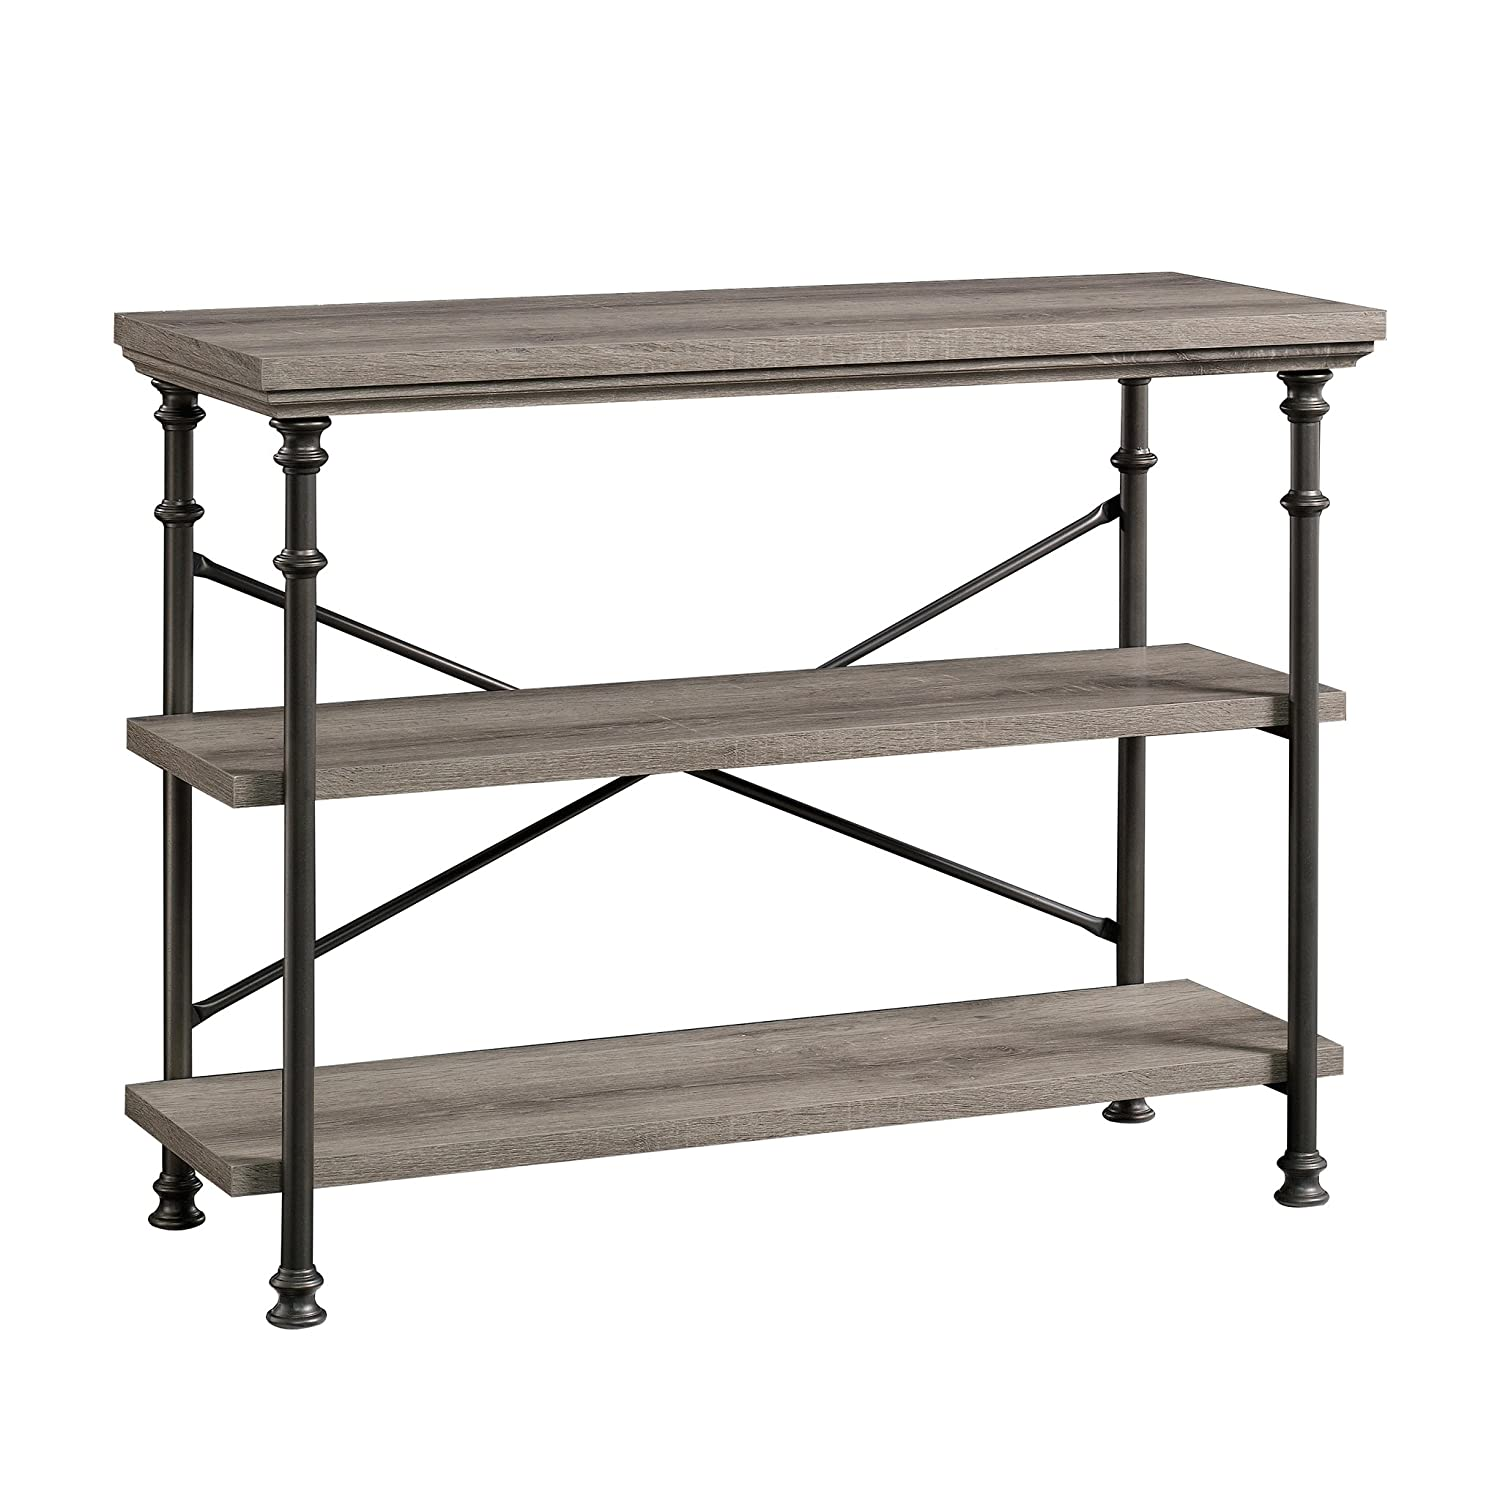 Sauder Canal Street Anywhere Console, For TV s up to 42 , Northern Oak finish